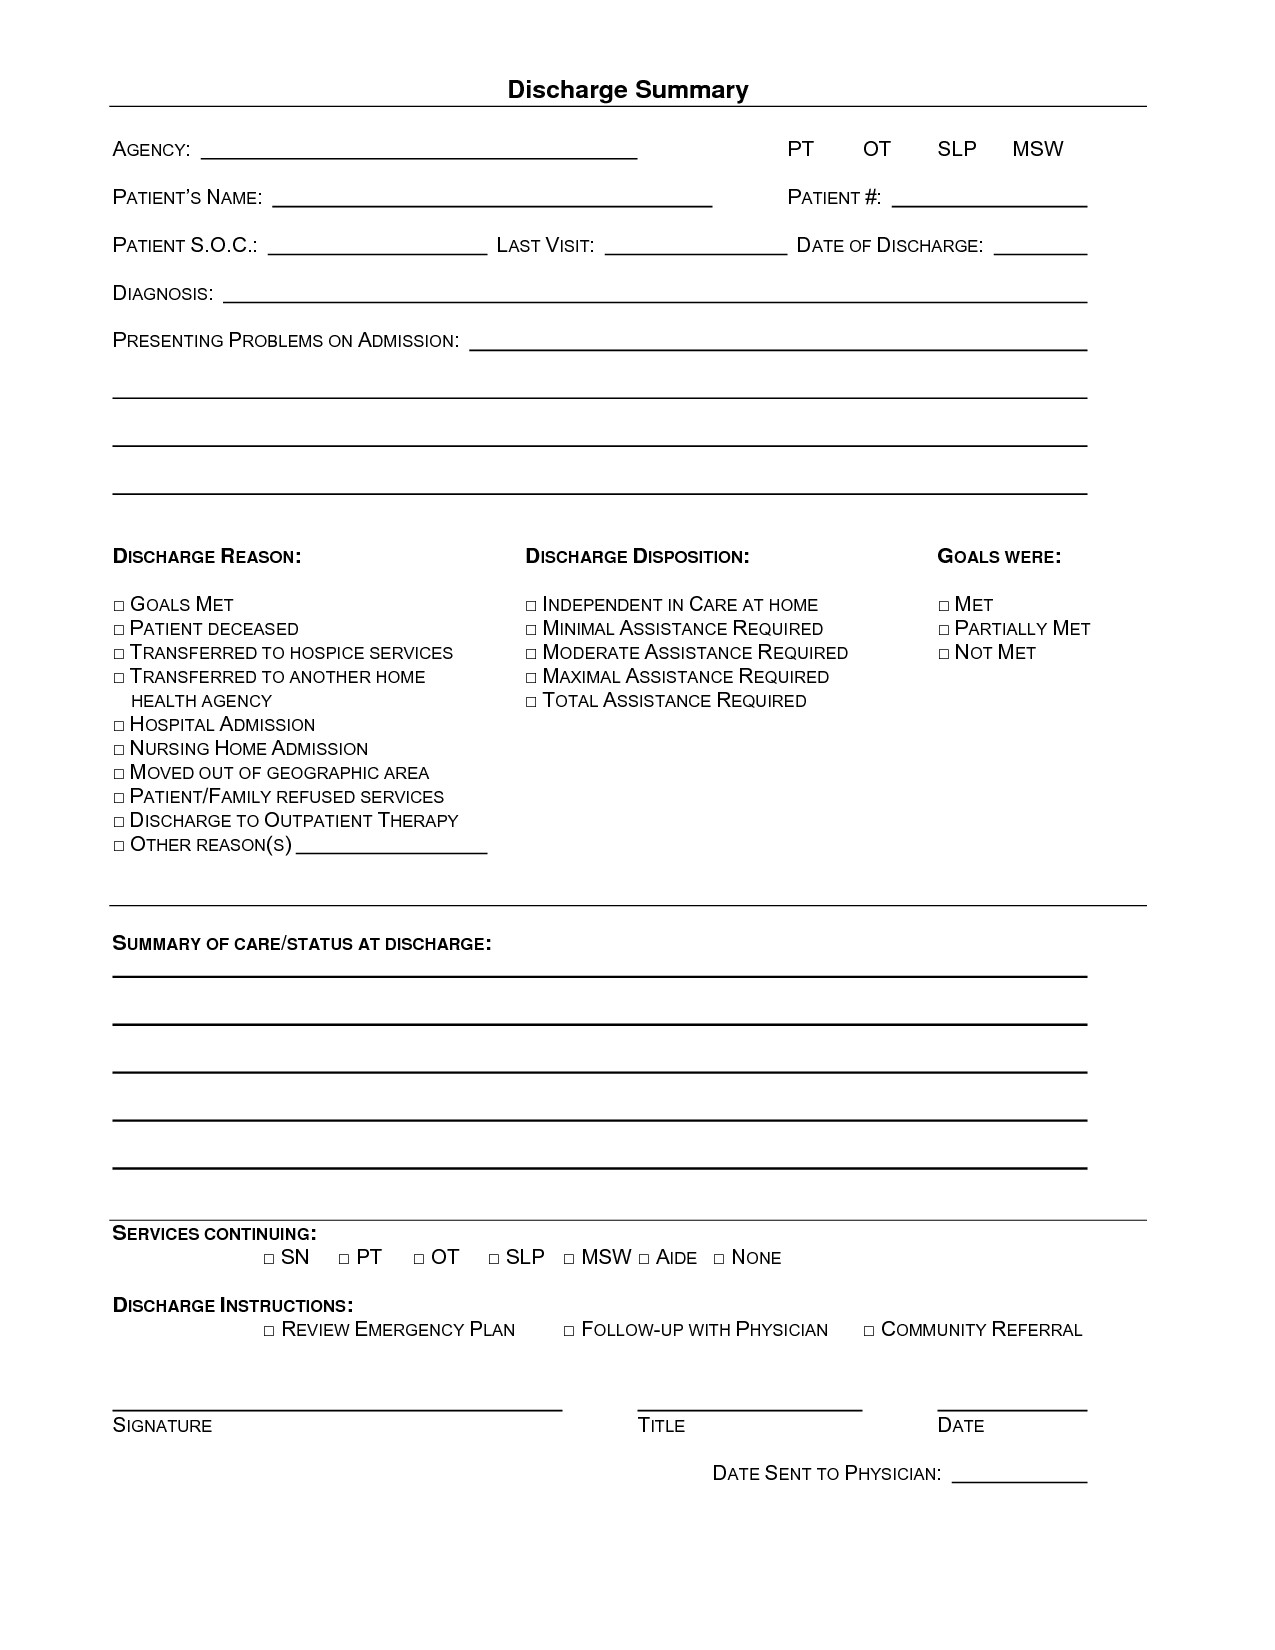 Patient Discharge form Template 15 Of Hospital Emergency Room Discharge Template